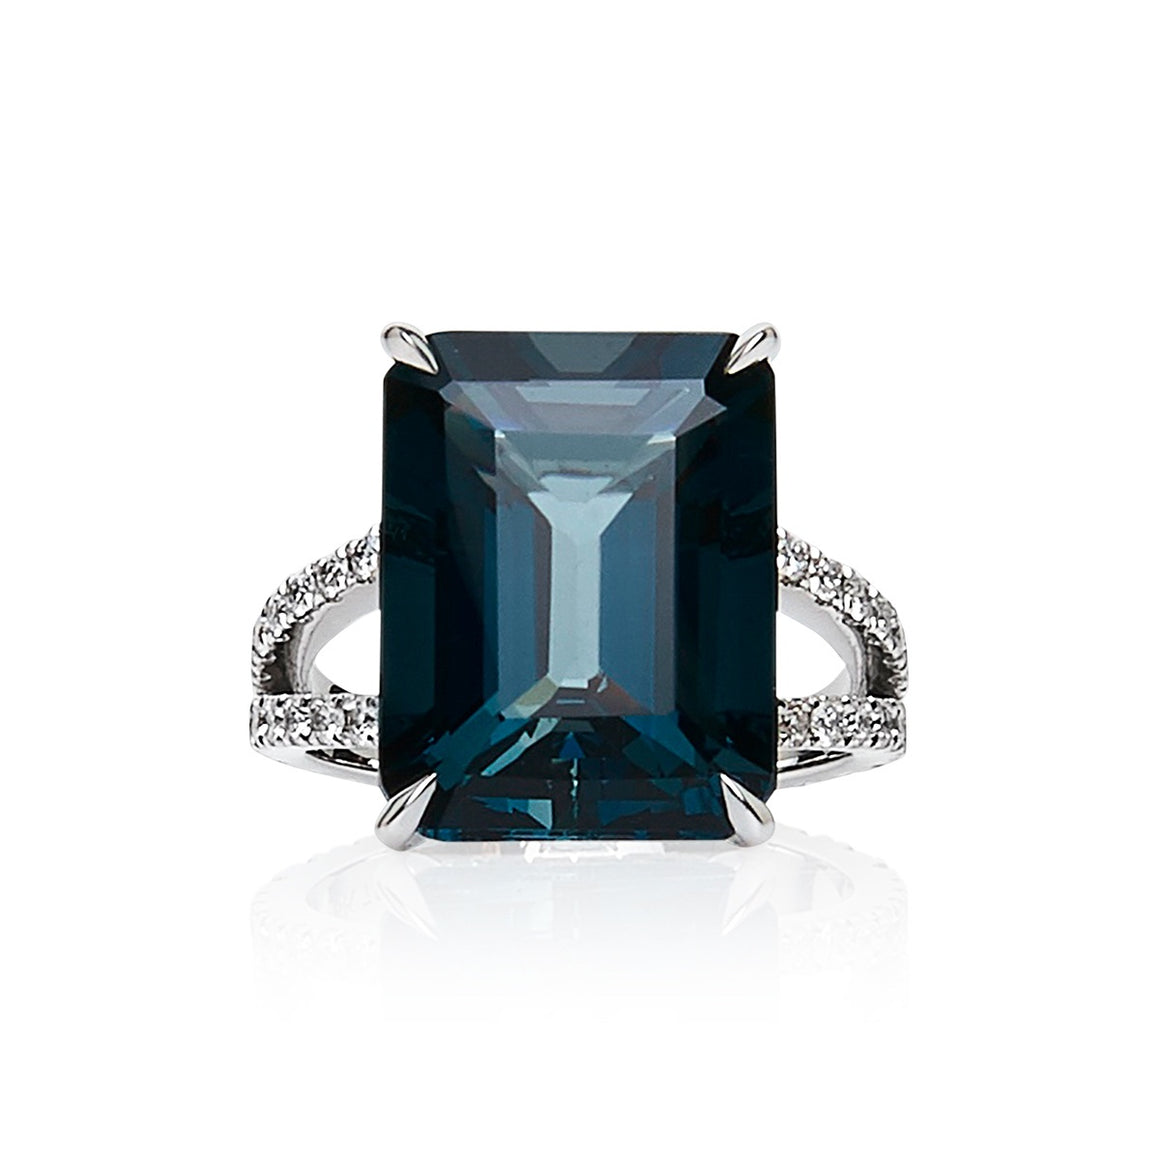 London Blue Topaz & Diamond 'Valonz' Ring - Gemma Stone Jewellery